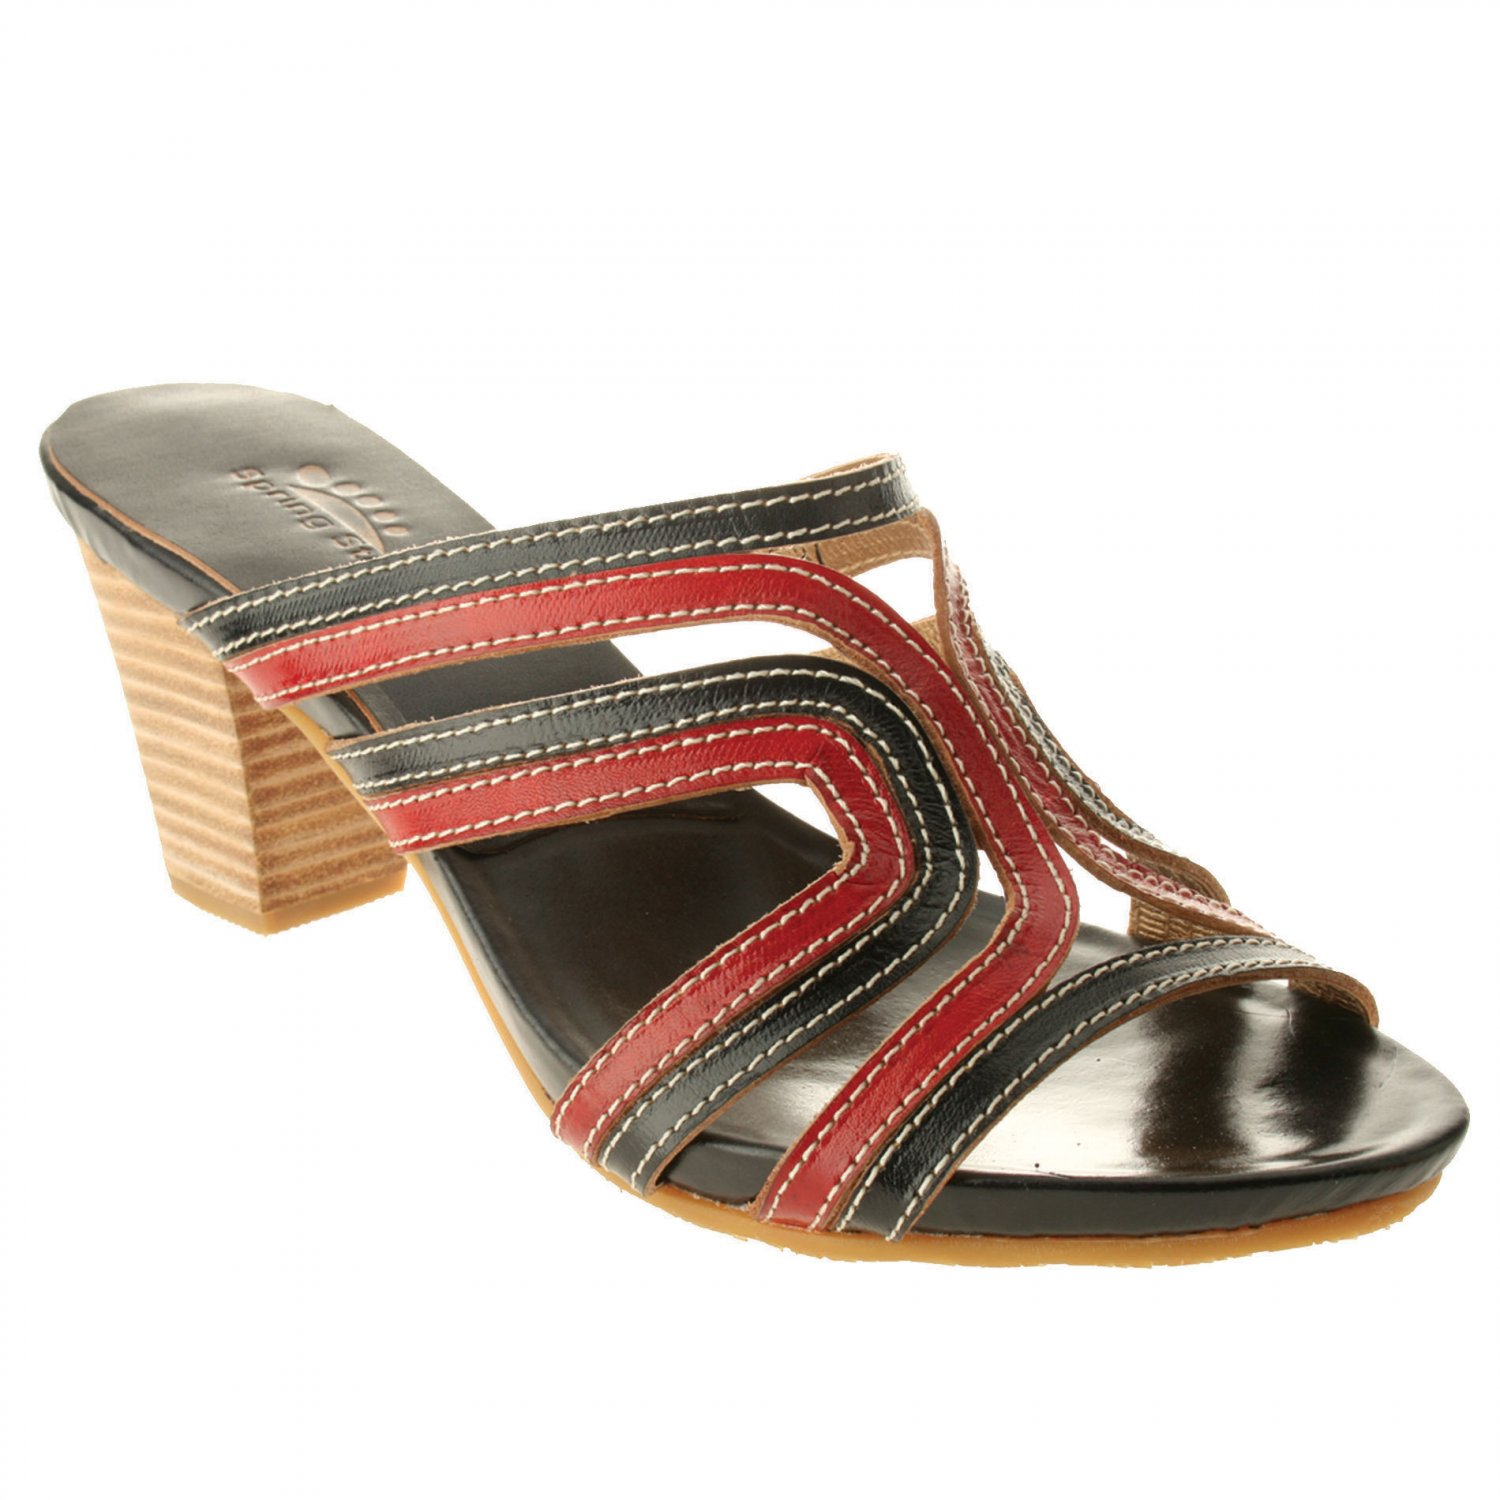 Spring Step IDYLLIC Sandals Shoes All Sizes & Colors $